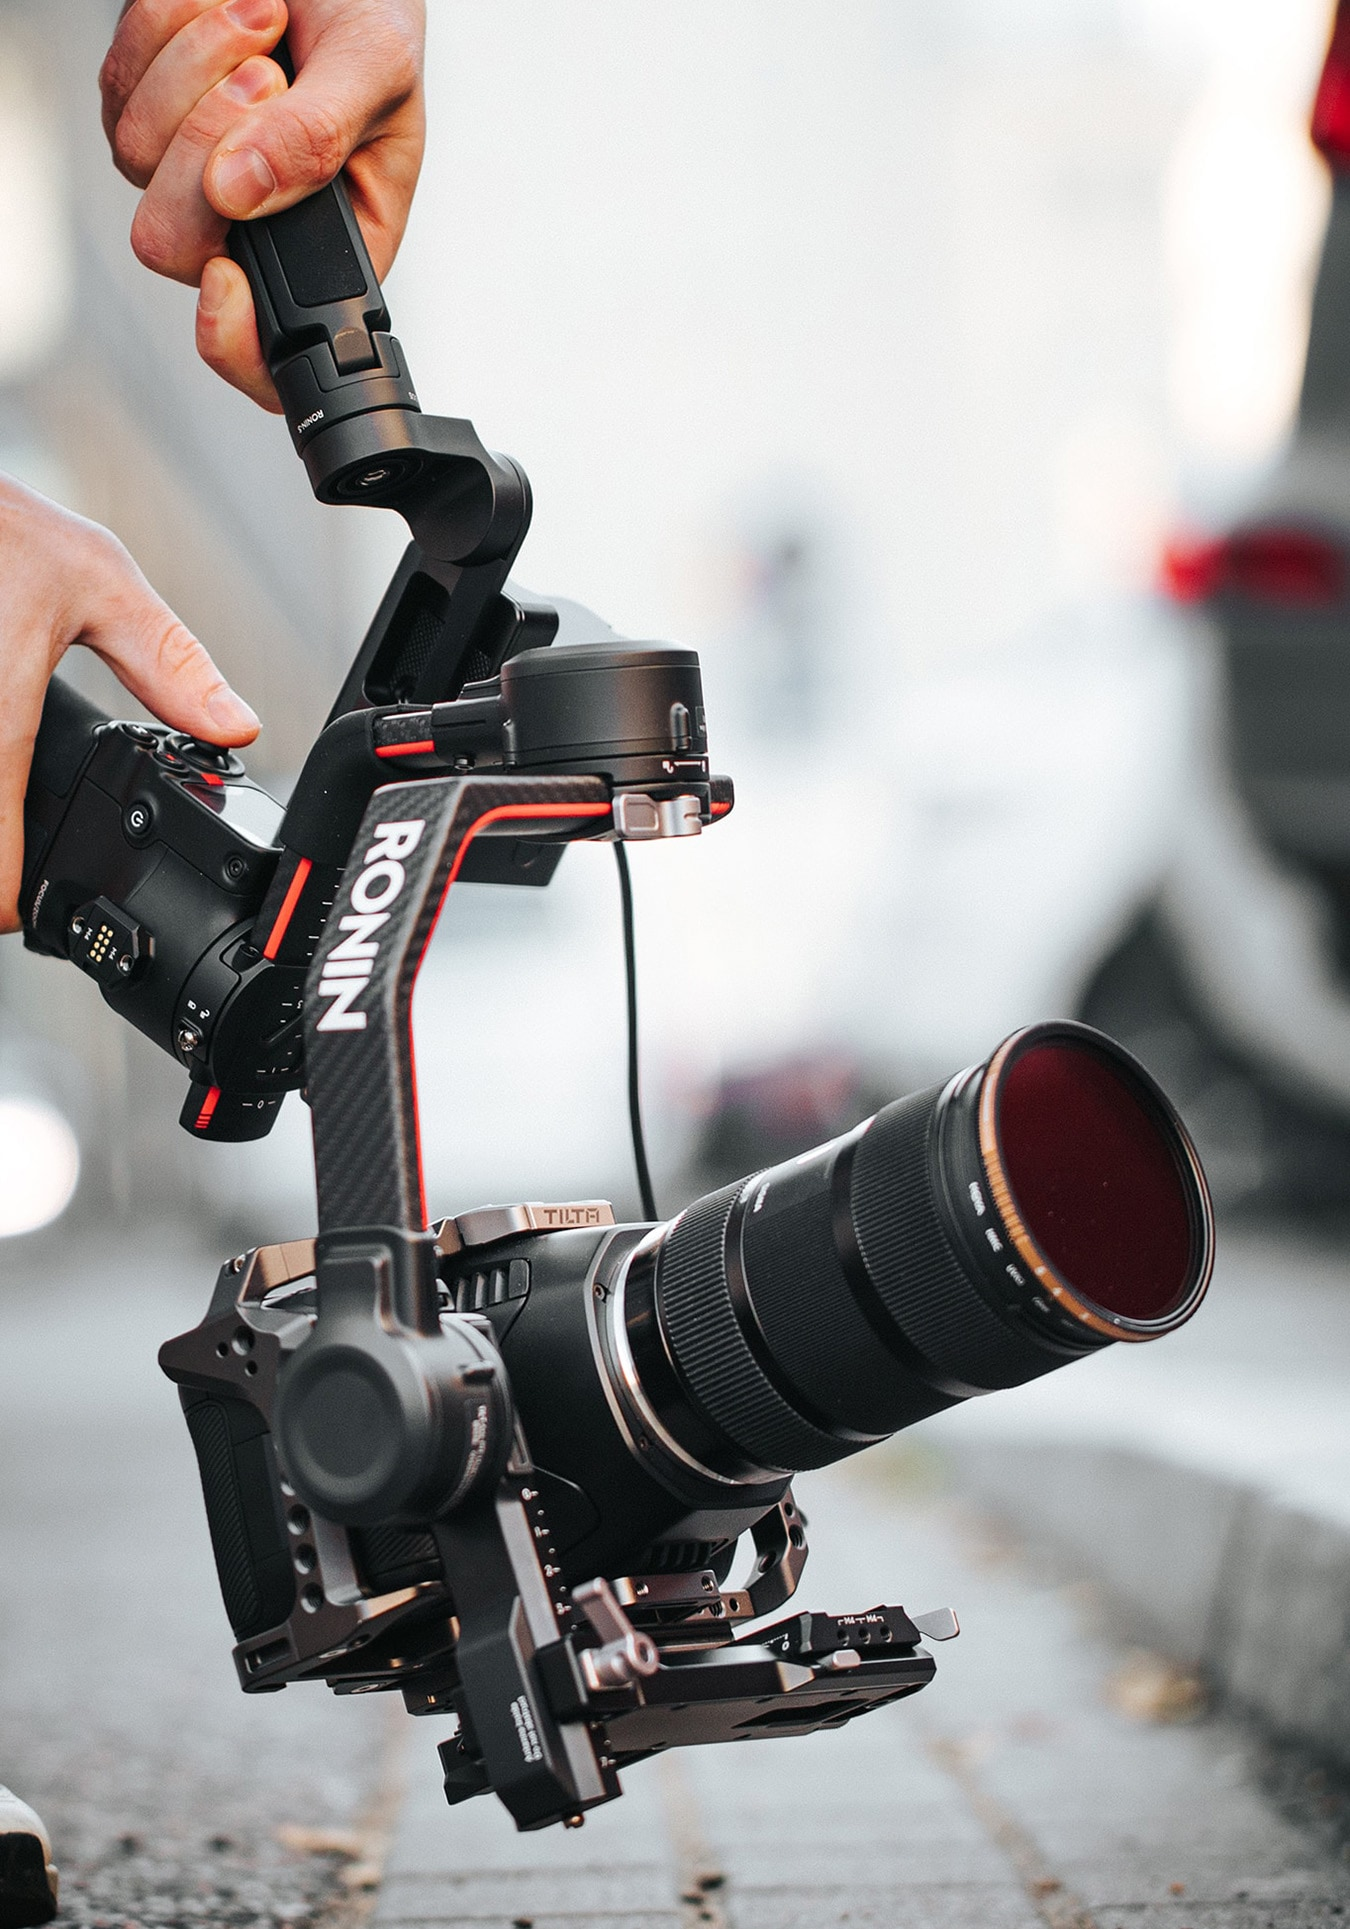 Services – Videography & Product Photography